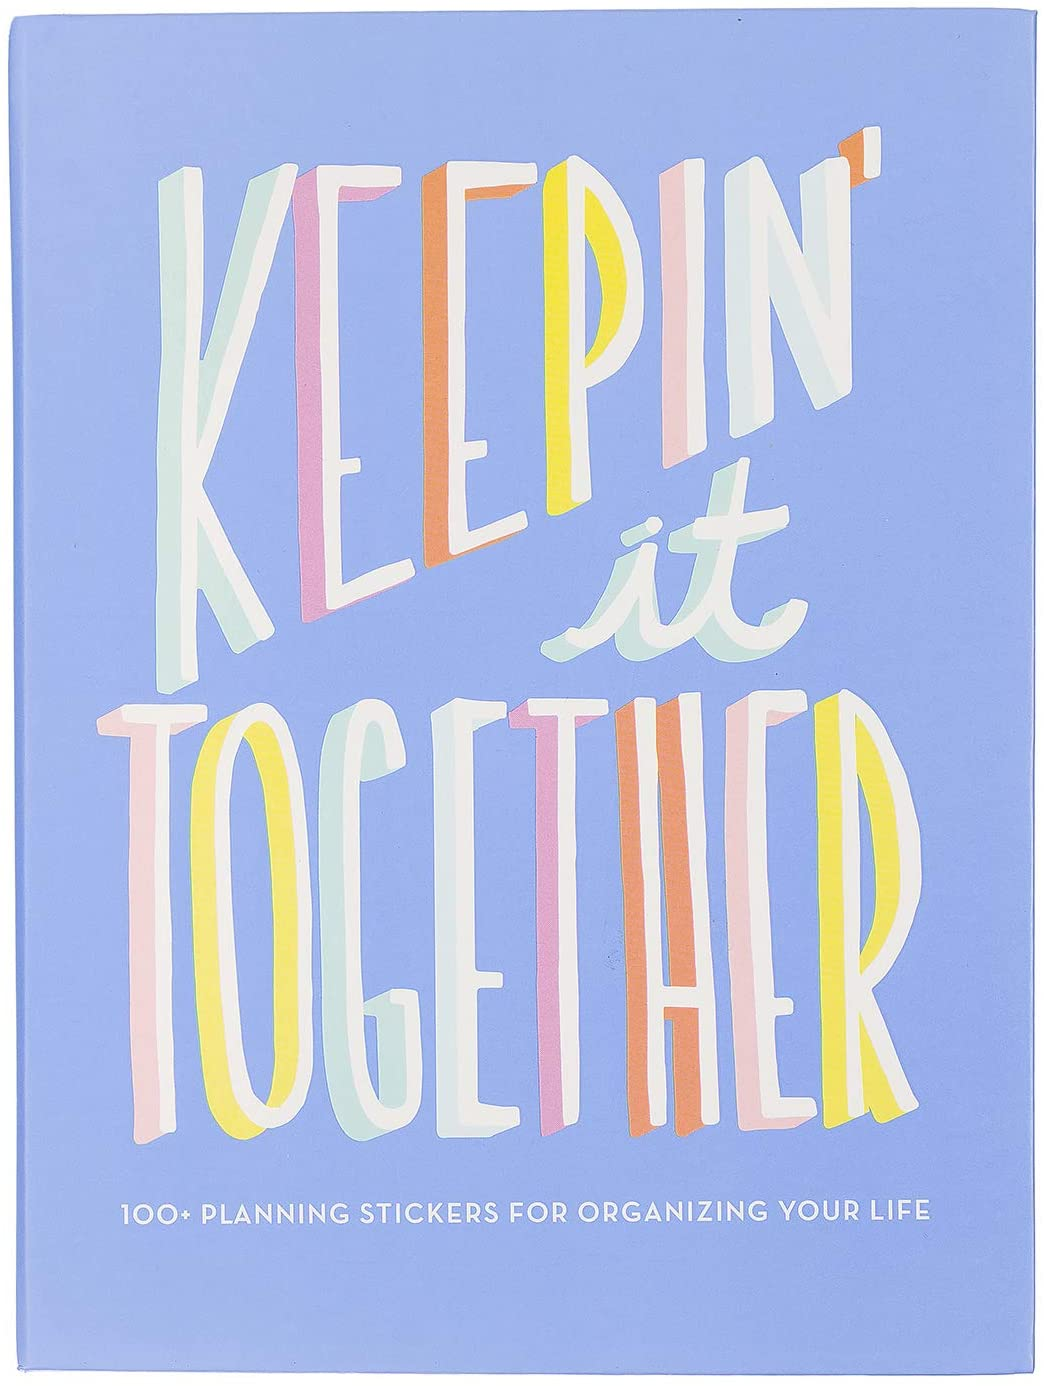 Keepin' It Together Sticker Pack